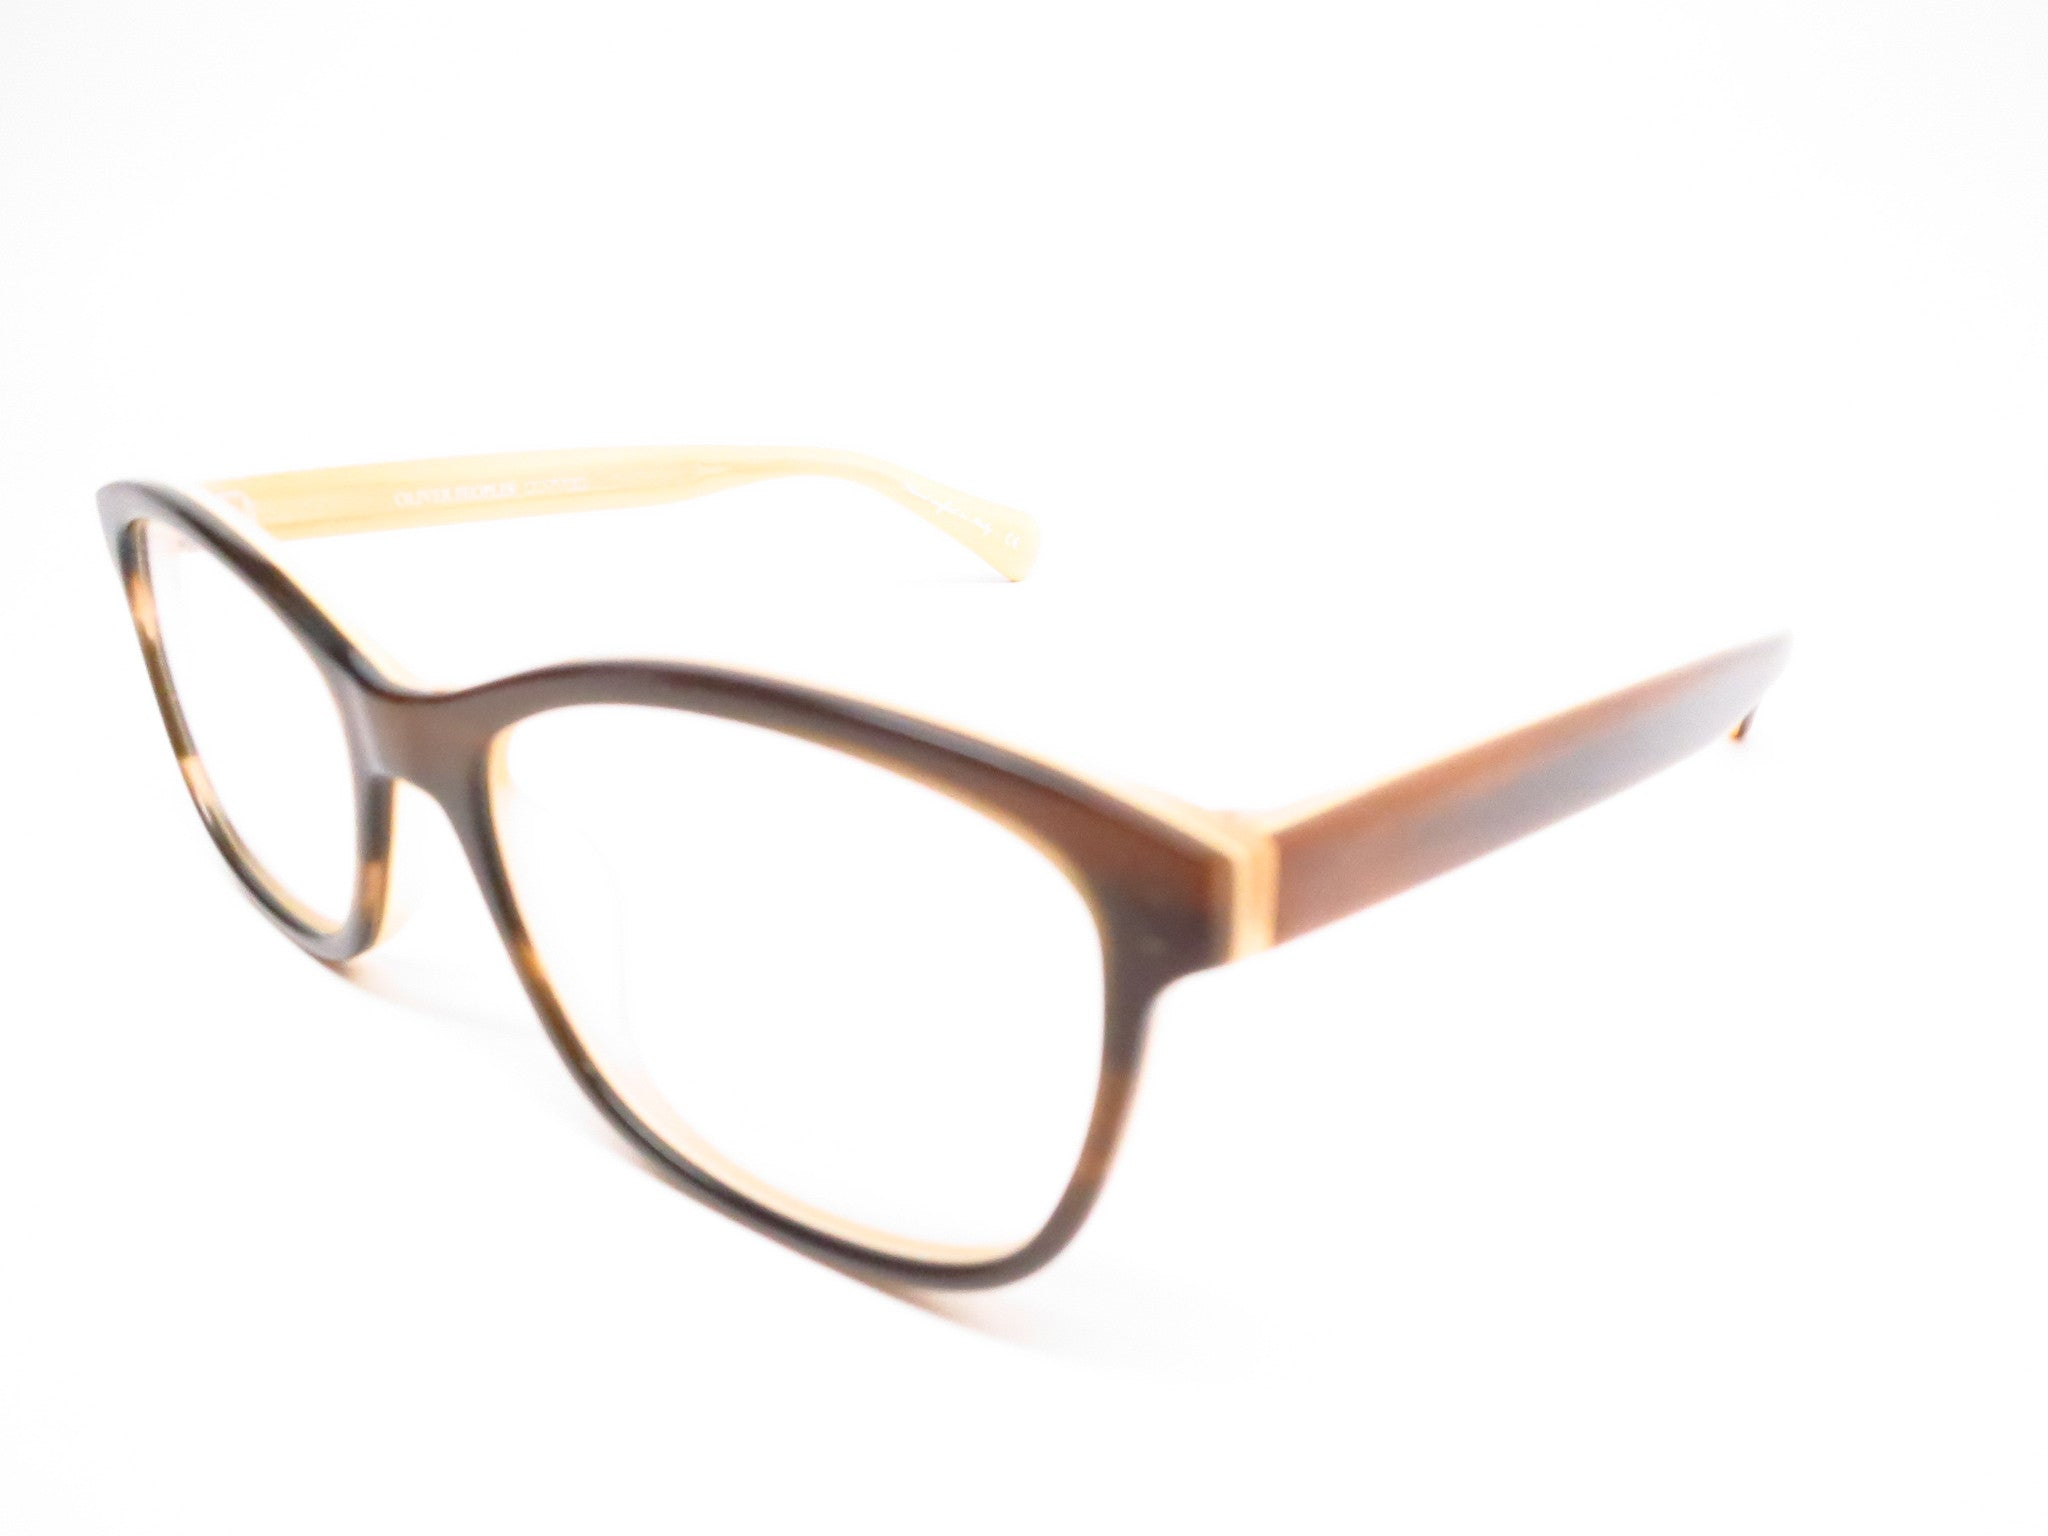 4cb95d6241 Oliver Peoples Follies OV 5194 1281 Brown with Cream Eyeglasses - Eye Heart  Shades - Oliver ...